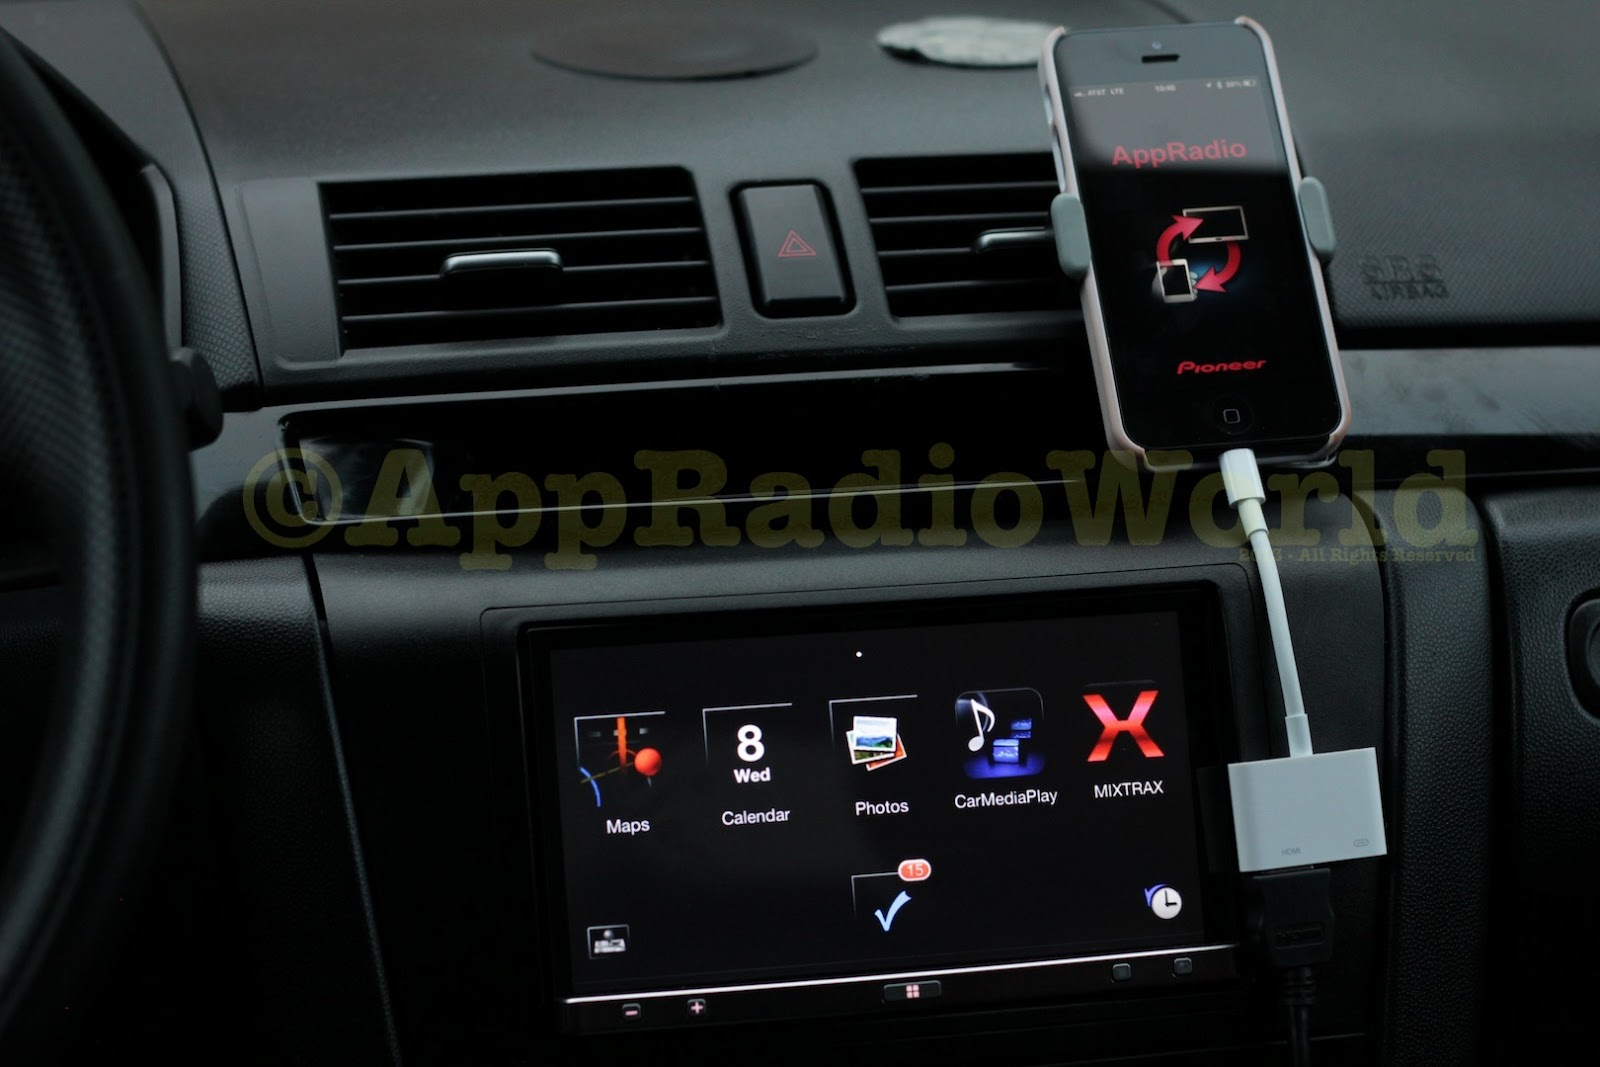 Appradioworld Apple Carplay Android Auto Car Technology News Pioneer Audio Future Phone Connections To Stereos Wont Require Cable Adapter Kits